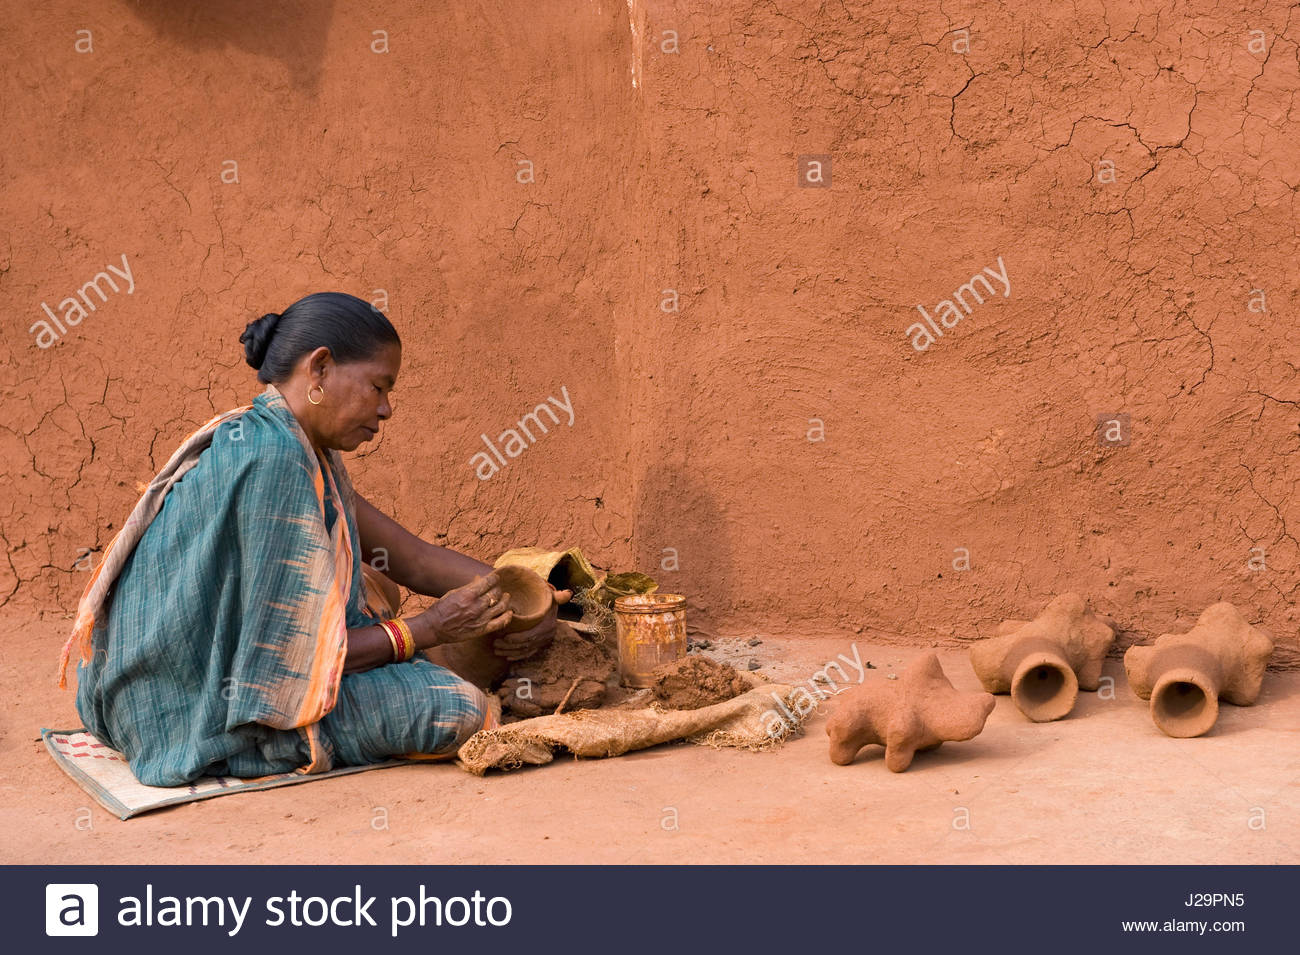 India, Orissa, Sadaibarini, untouchable village specialized in the foundry of objects, manufacture of clay moulds - Stock Image